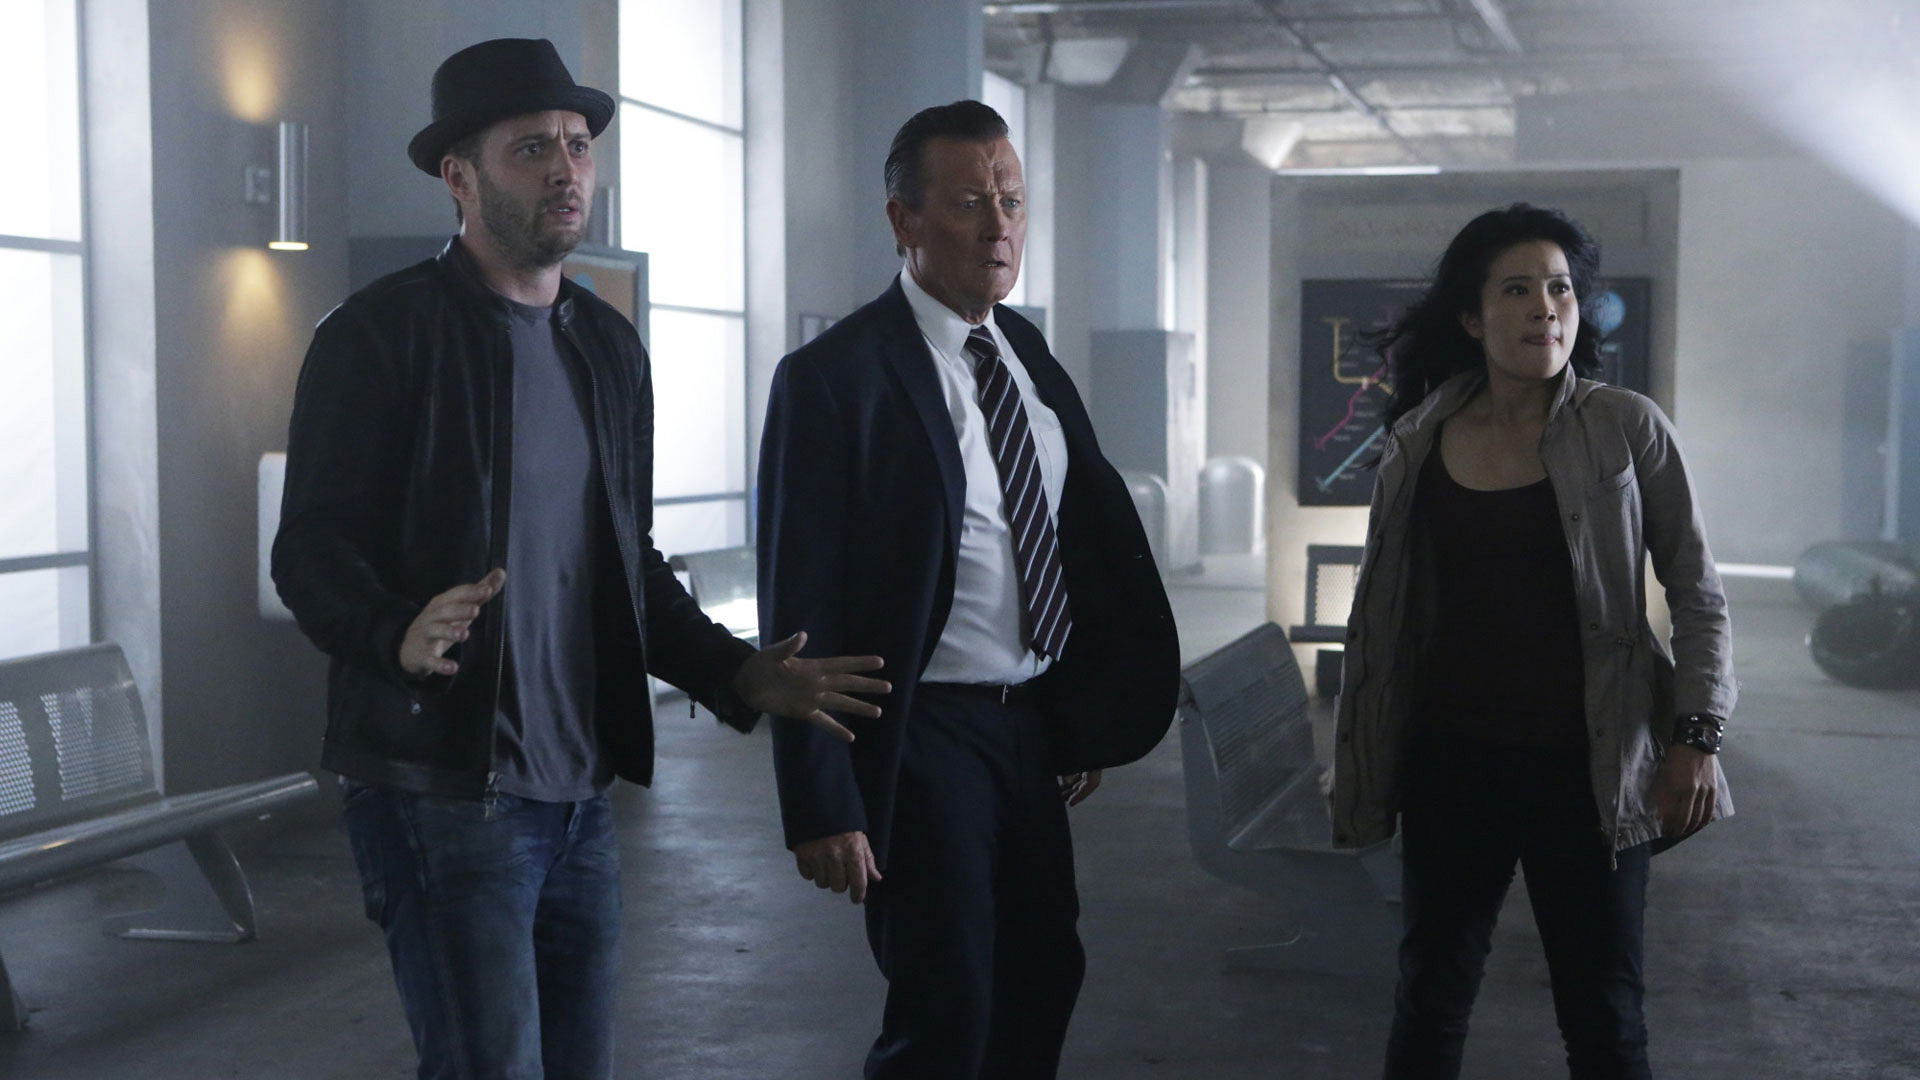 Eddie Kaye Thomas as Toby Curtis, Robert Patrick as Agent Cabe Gallo, and Jadyn Wong as Happy Quinn